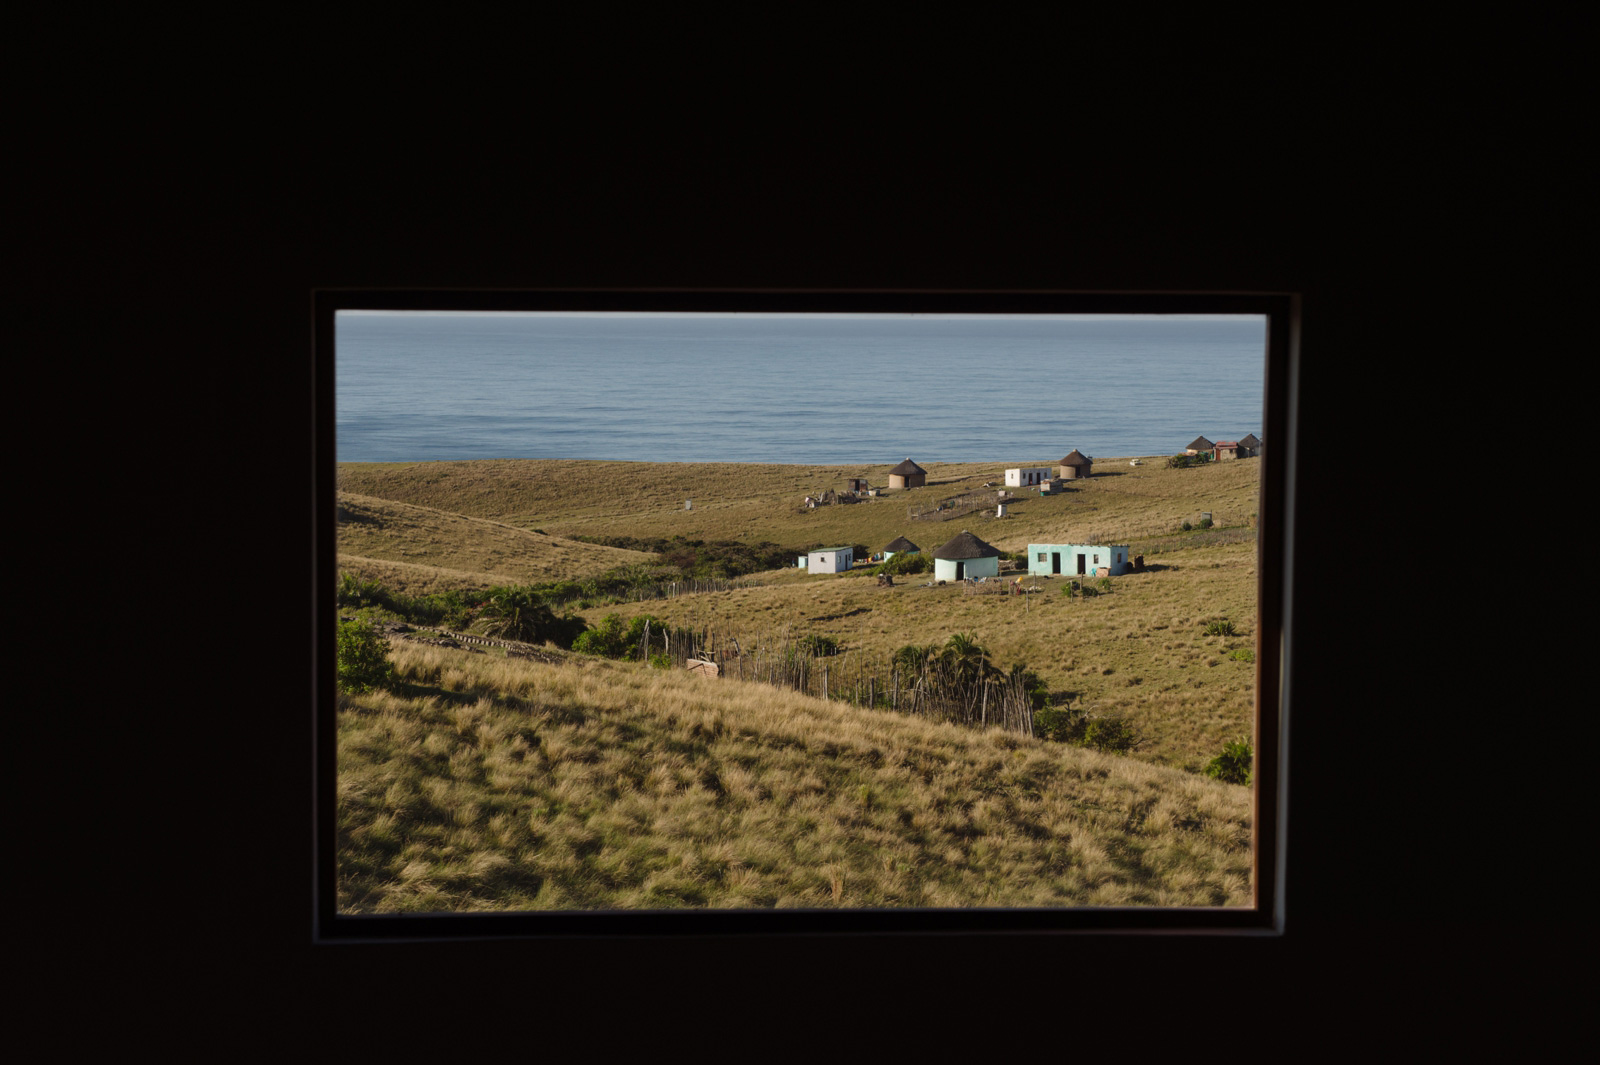 view of the transkei